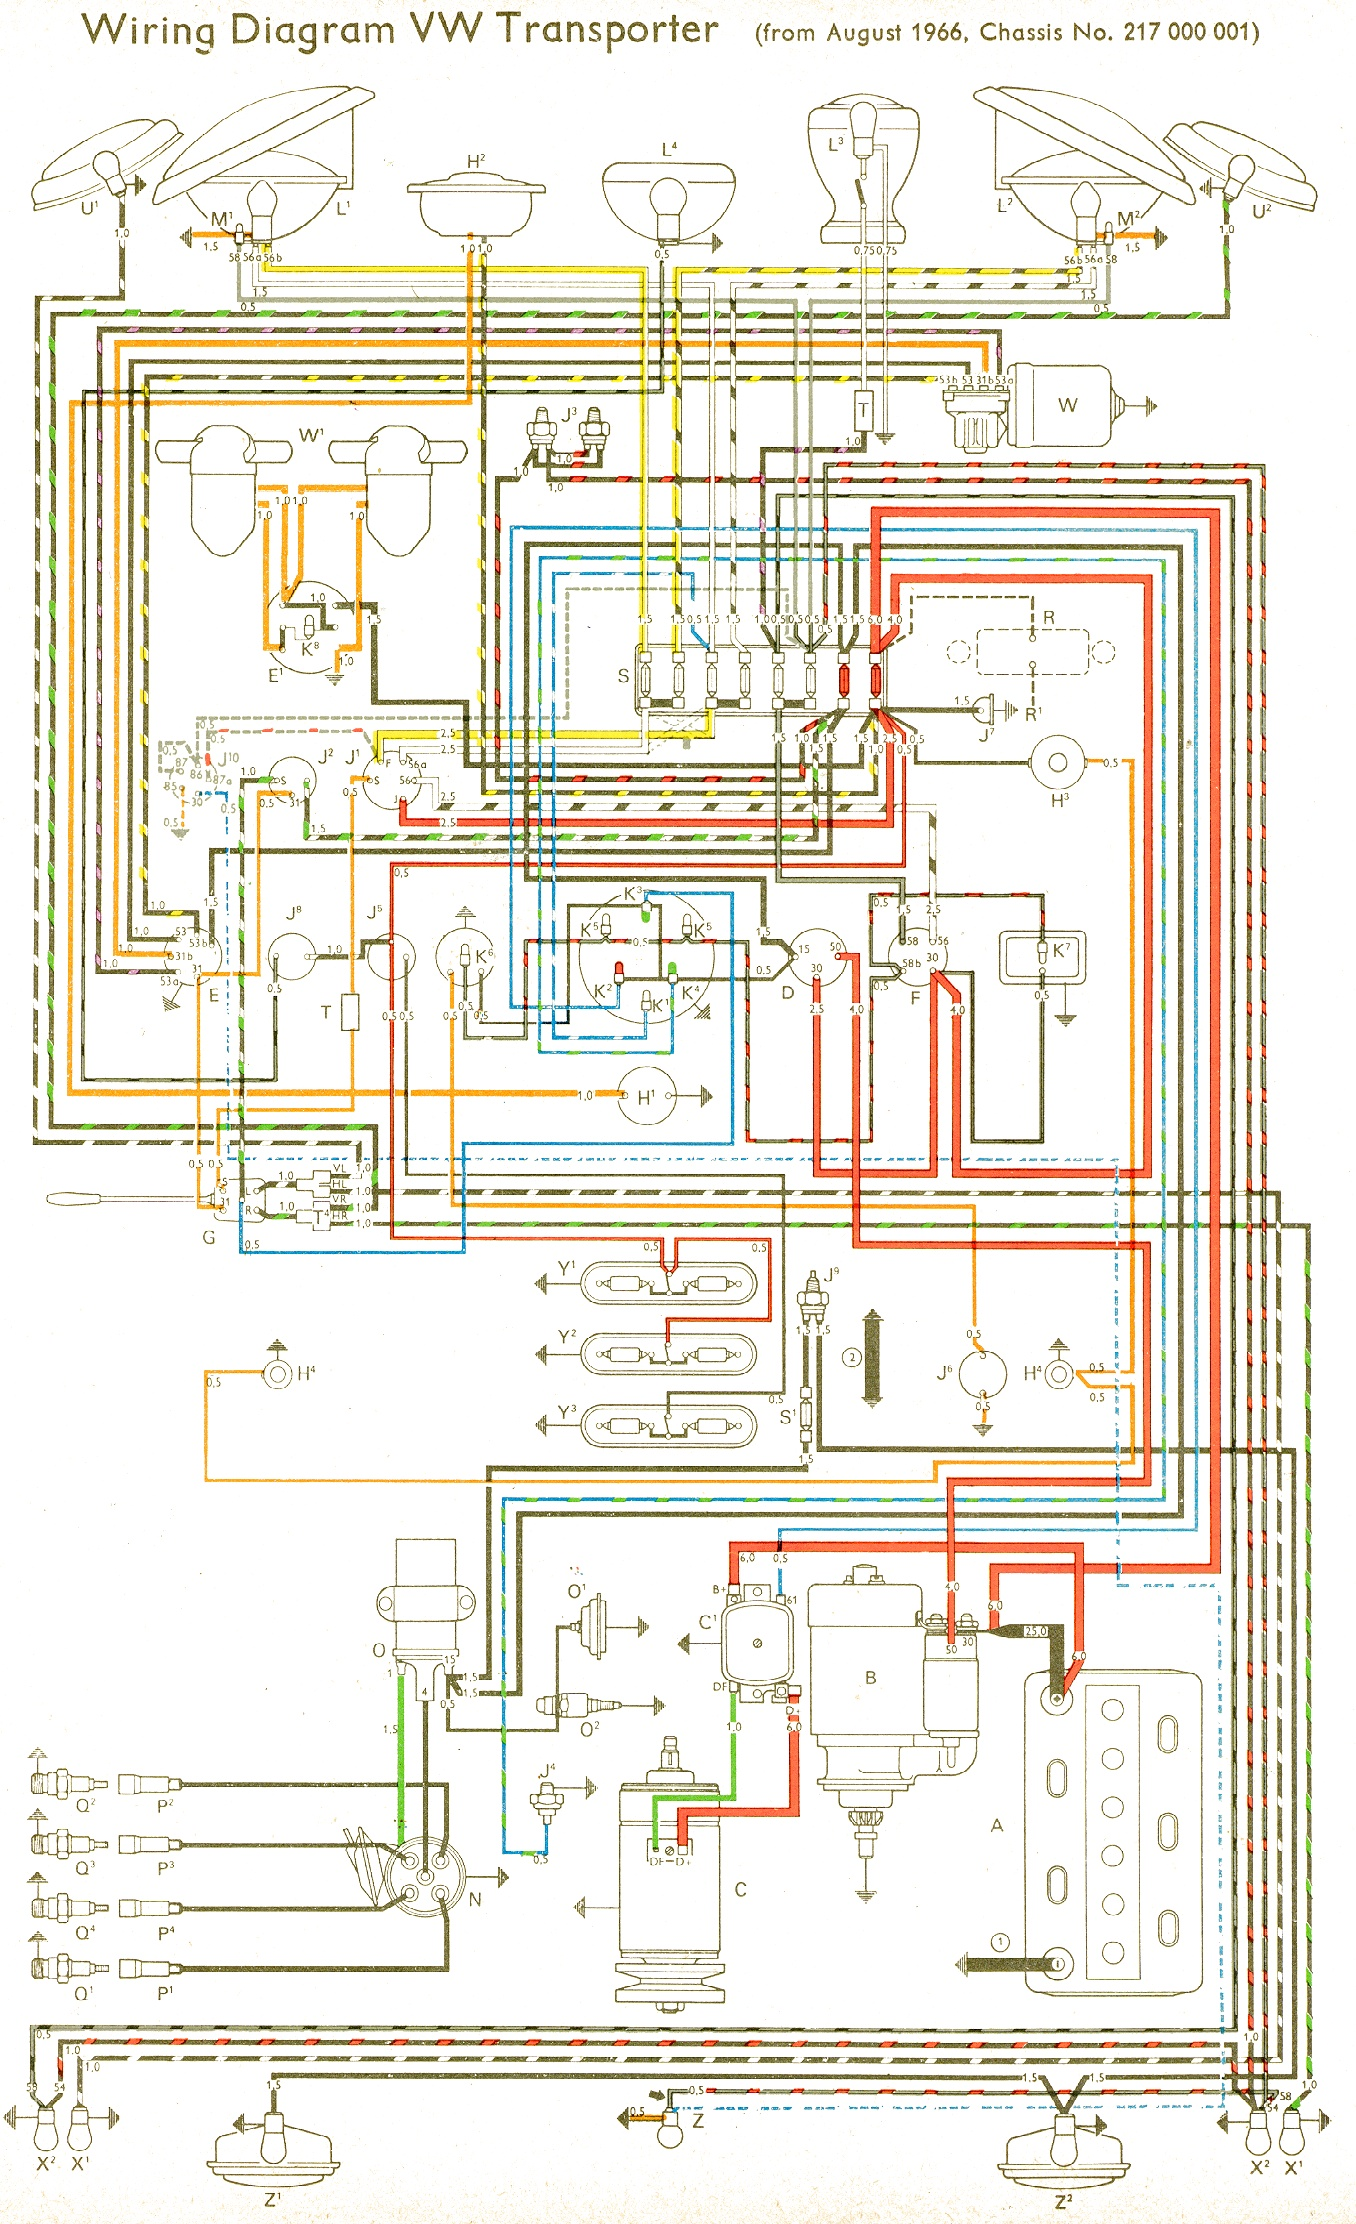 bus 66 vw wiring diagrams 1970 vw bug wiring diagram at crackthecode.co